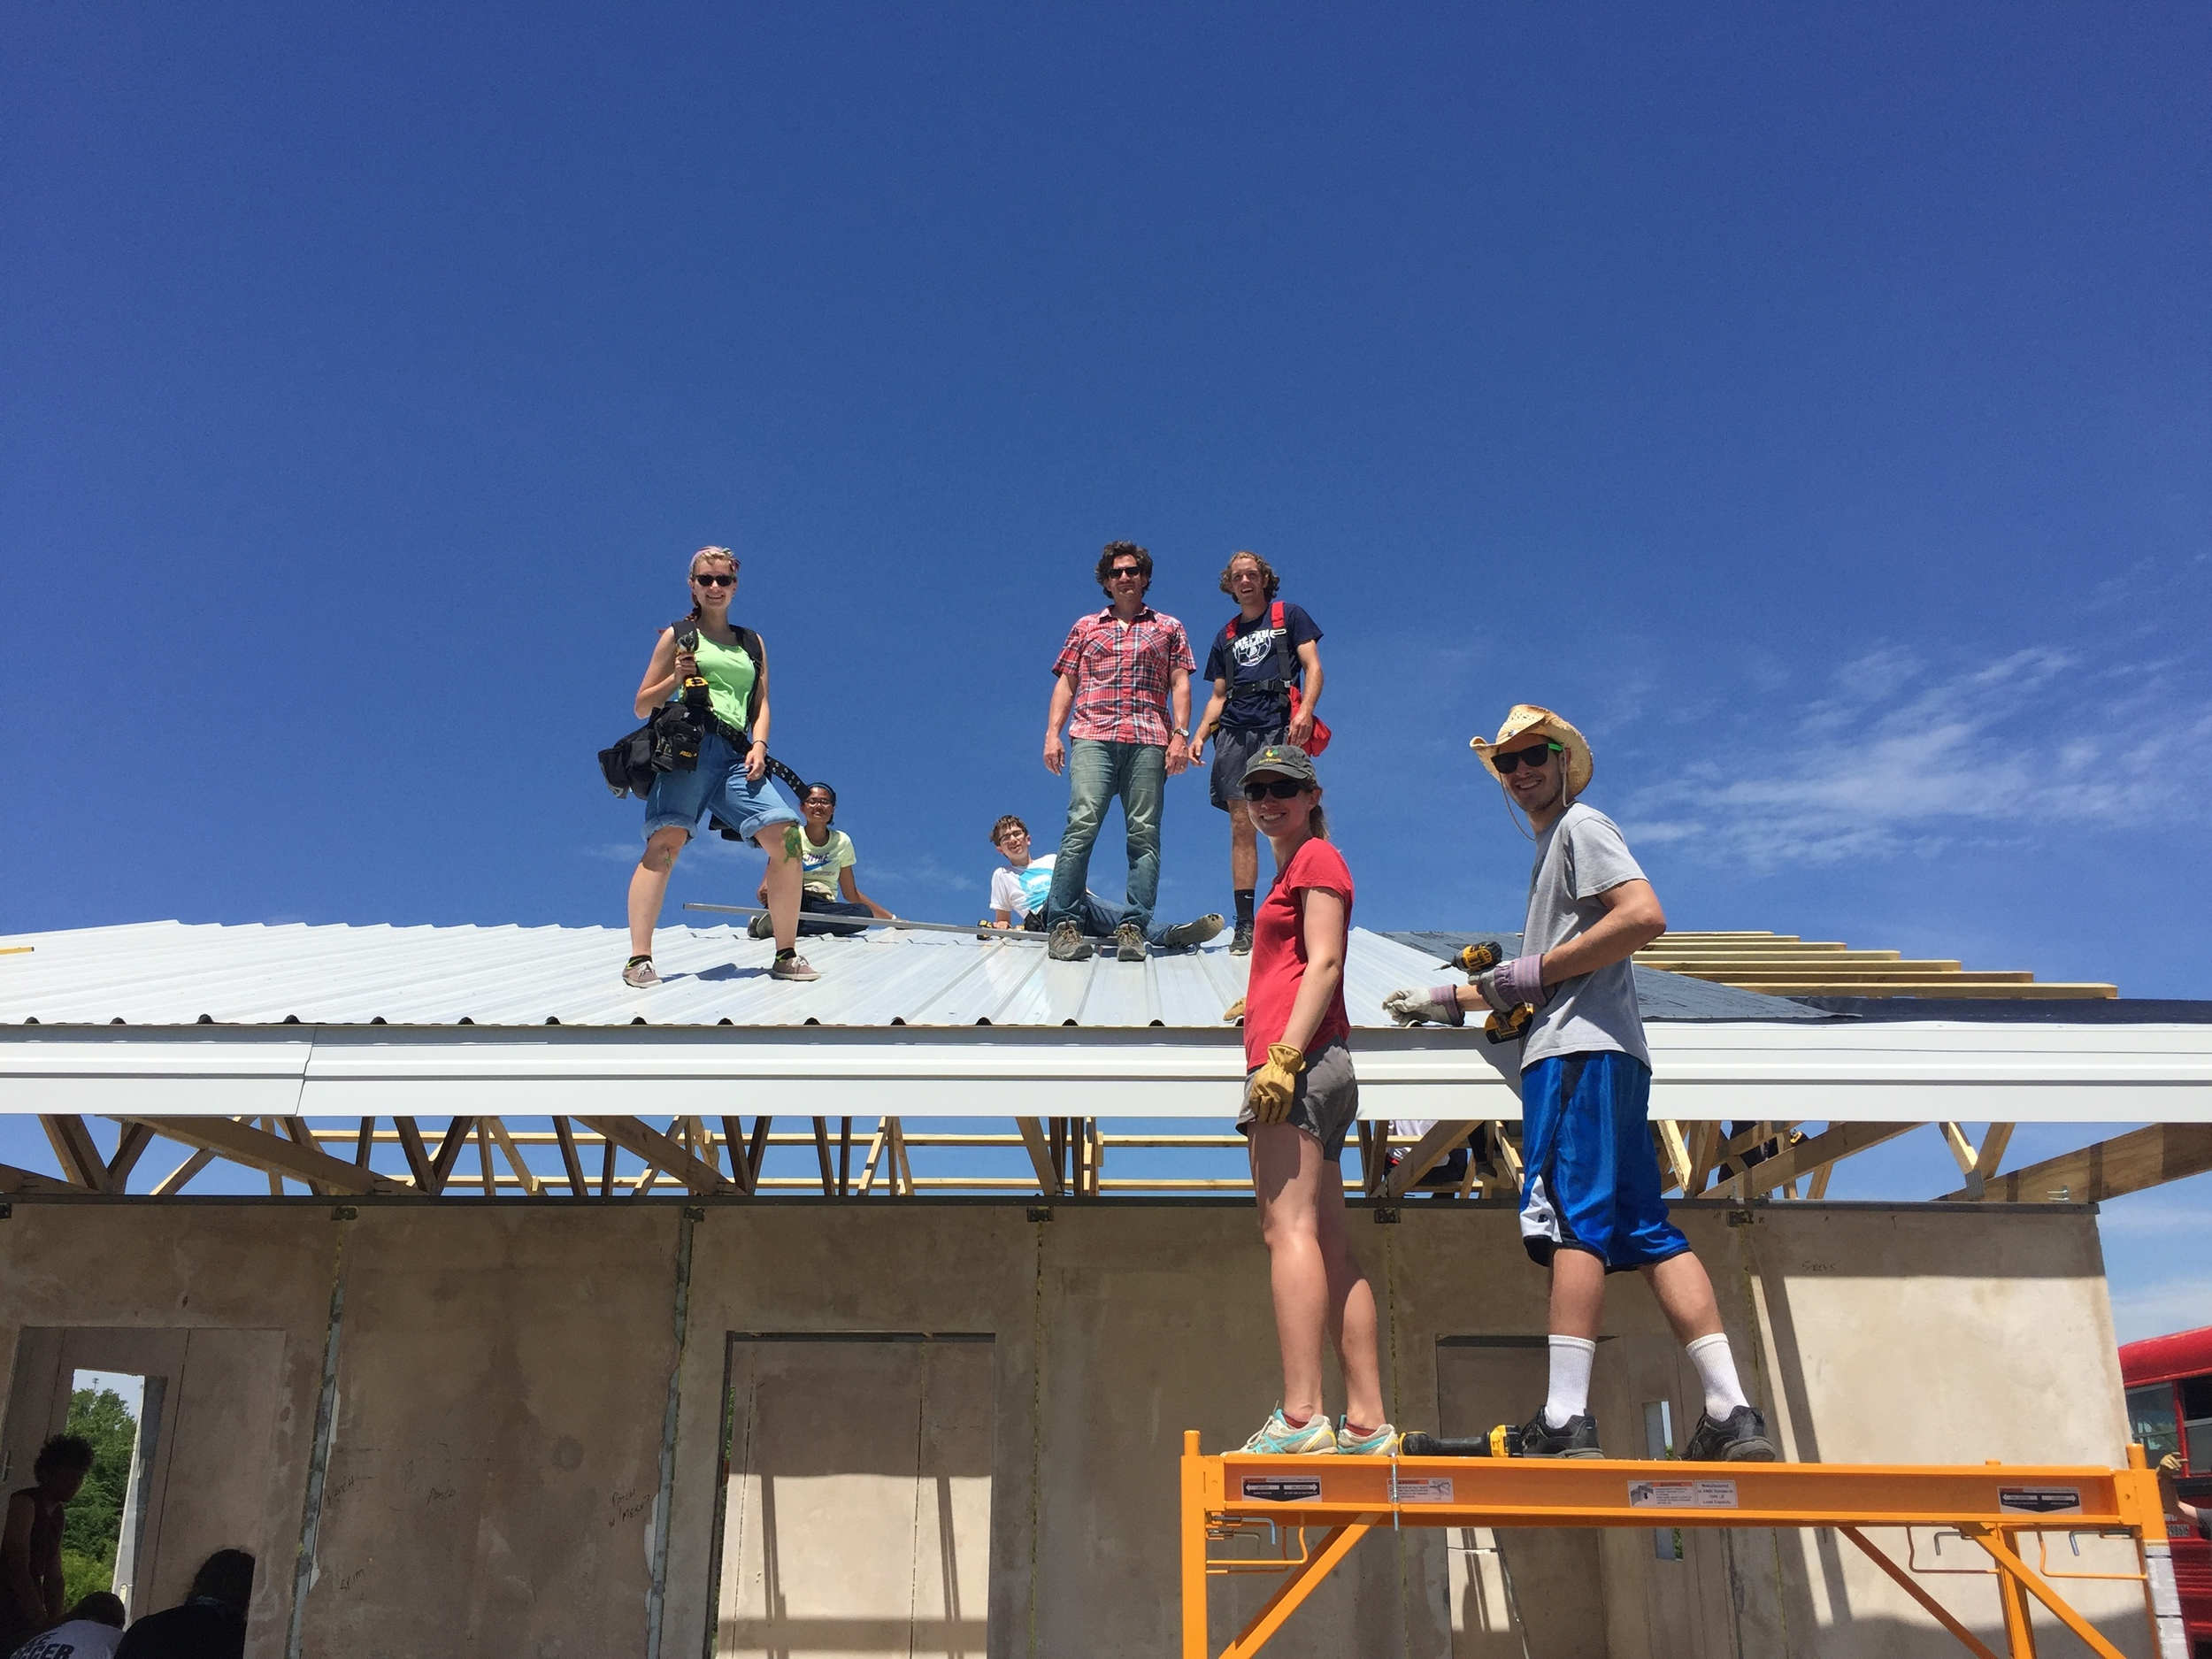 Taking great heights to build strong, safe, secure homes:  Thanks to our amazing volunteers and interns who worked alongside Bryan to put the roof on Ford's new home!